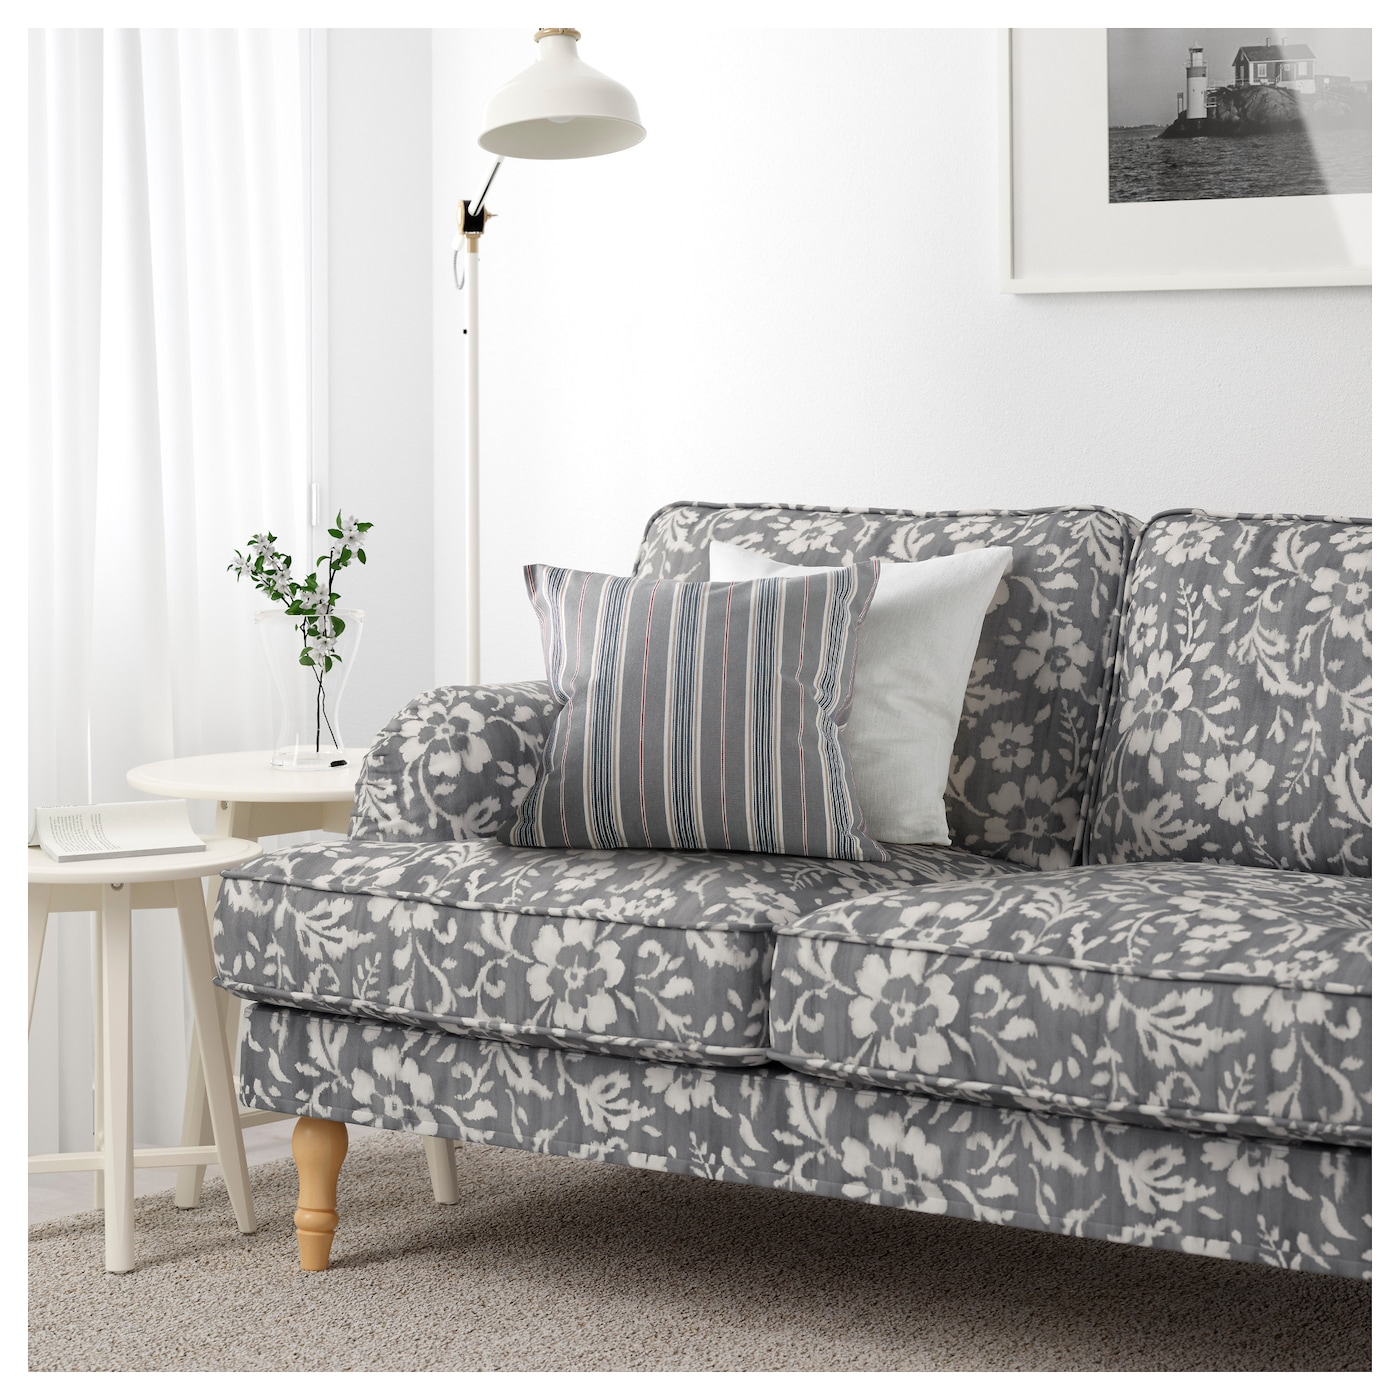 stocksund canap 2 places hovsten gris blanc brun clair bois ikea. Black Bedroom Furniture Sets. Home Design Ideas